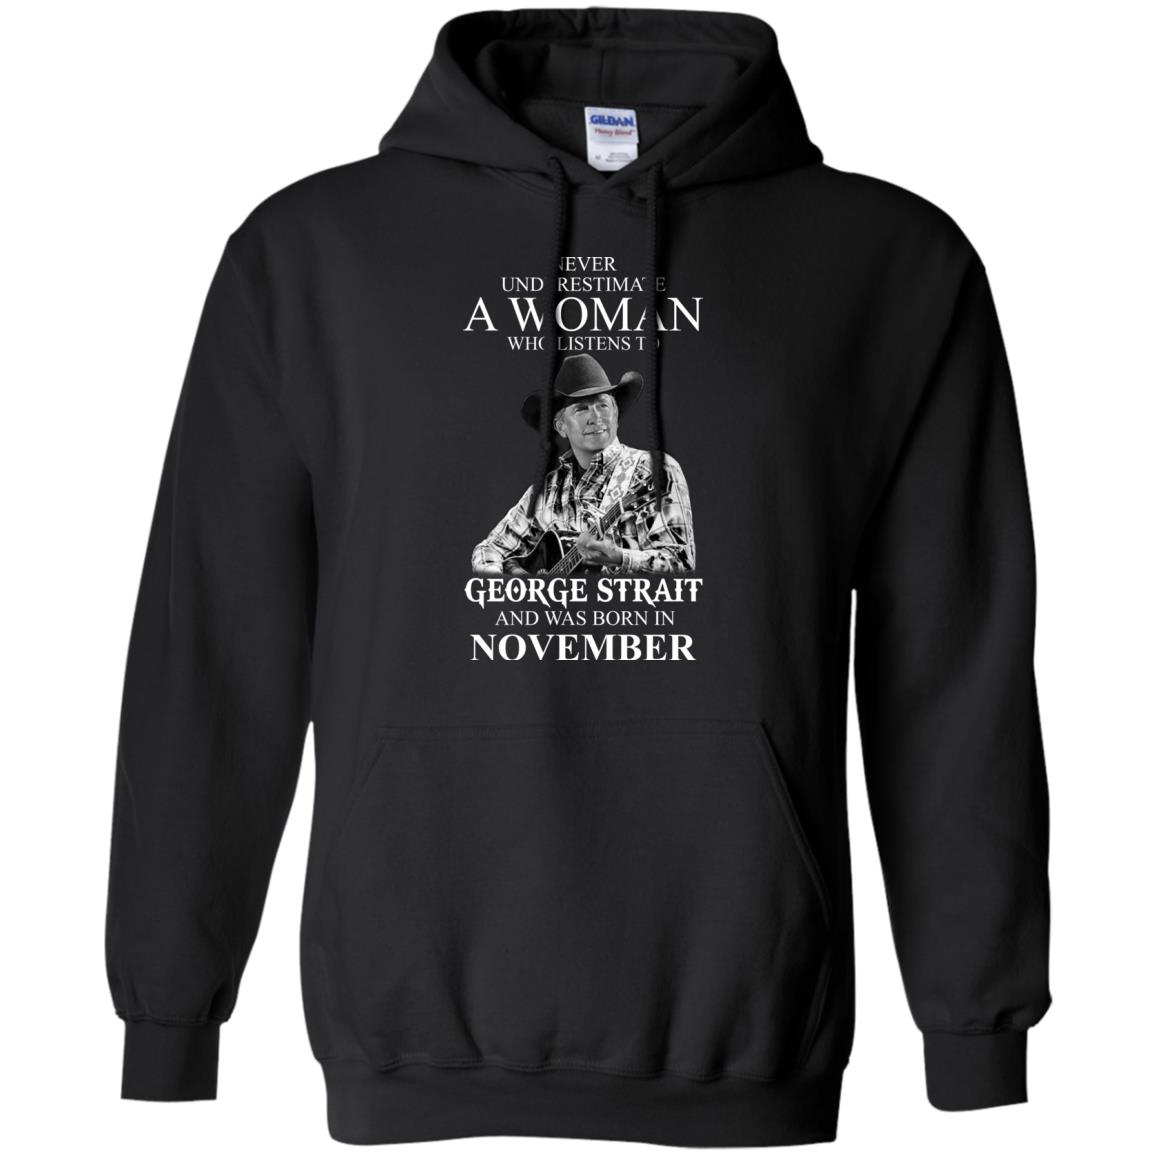 image 354 - Never Underestimate A Woman Who Listens To George Strait And Was Born In November shirt